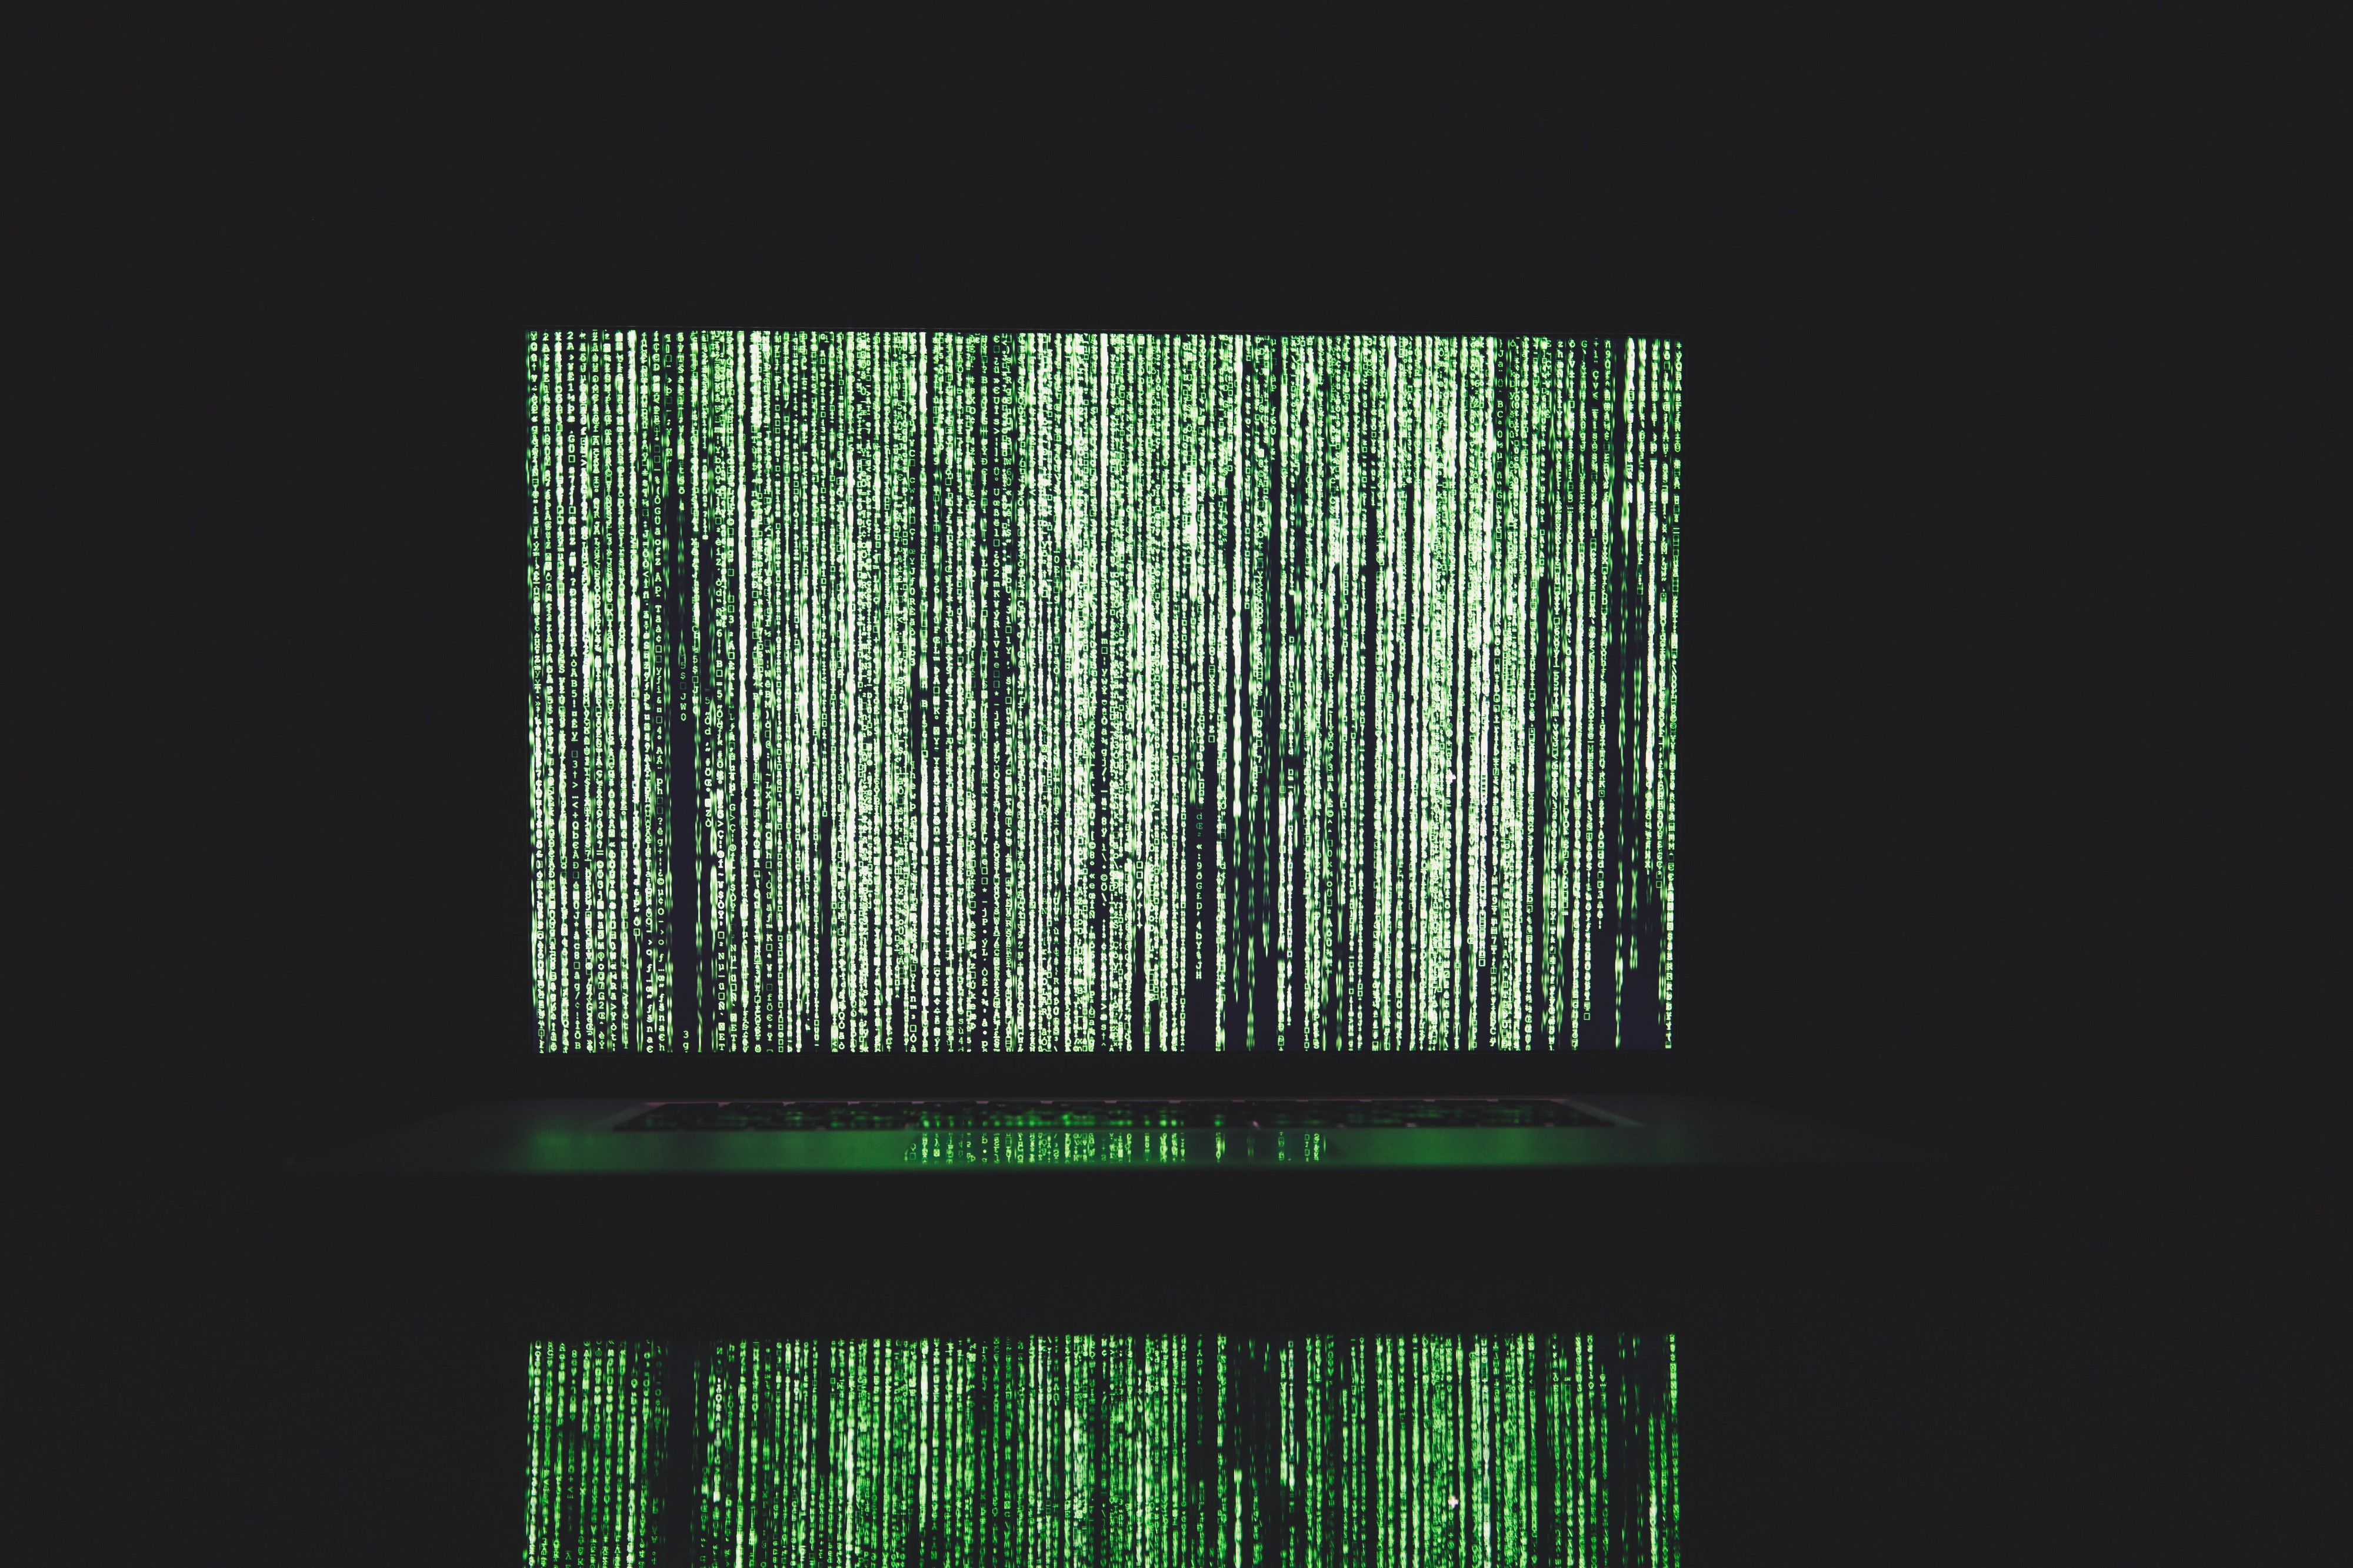 How to decrypt a list of MD5 hashed password - Andrea Dipace - Medium